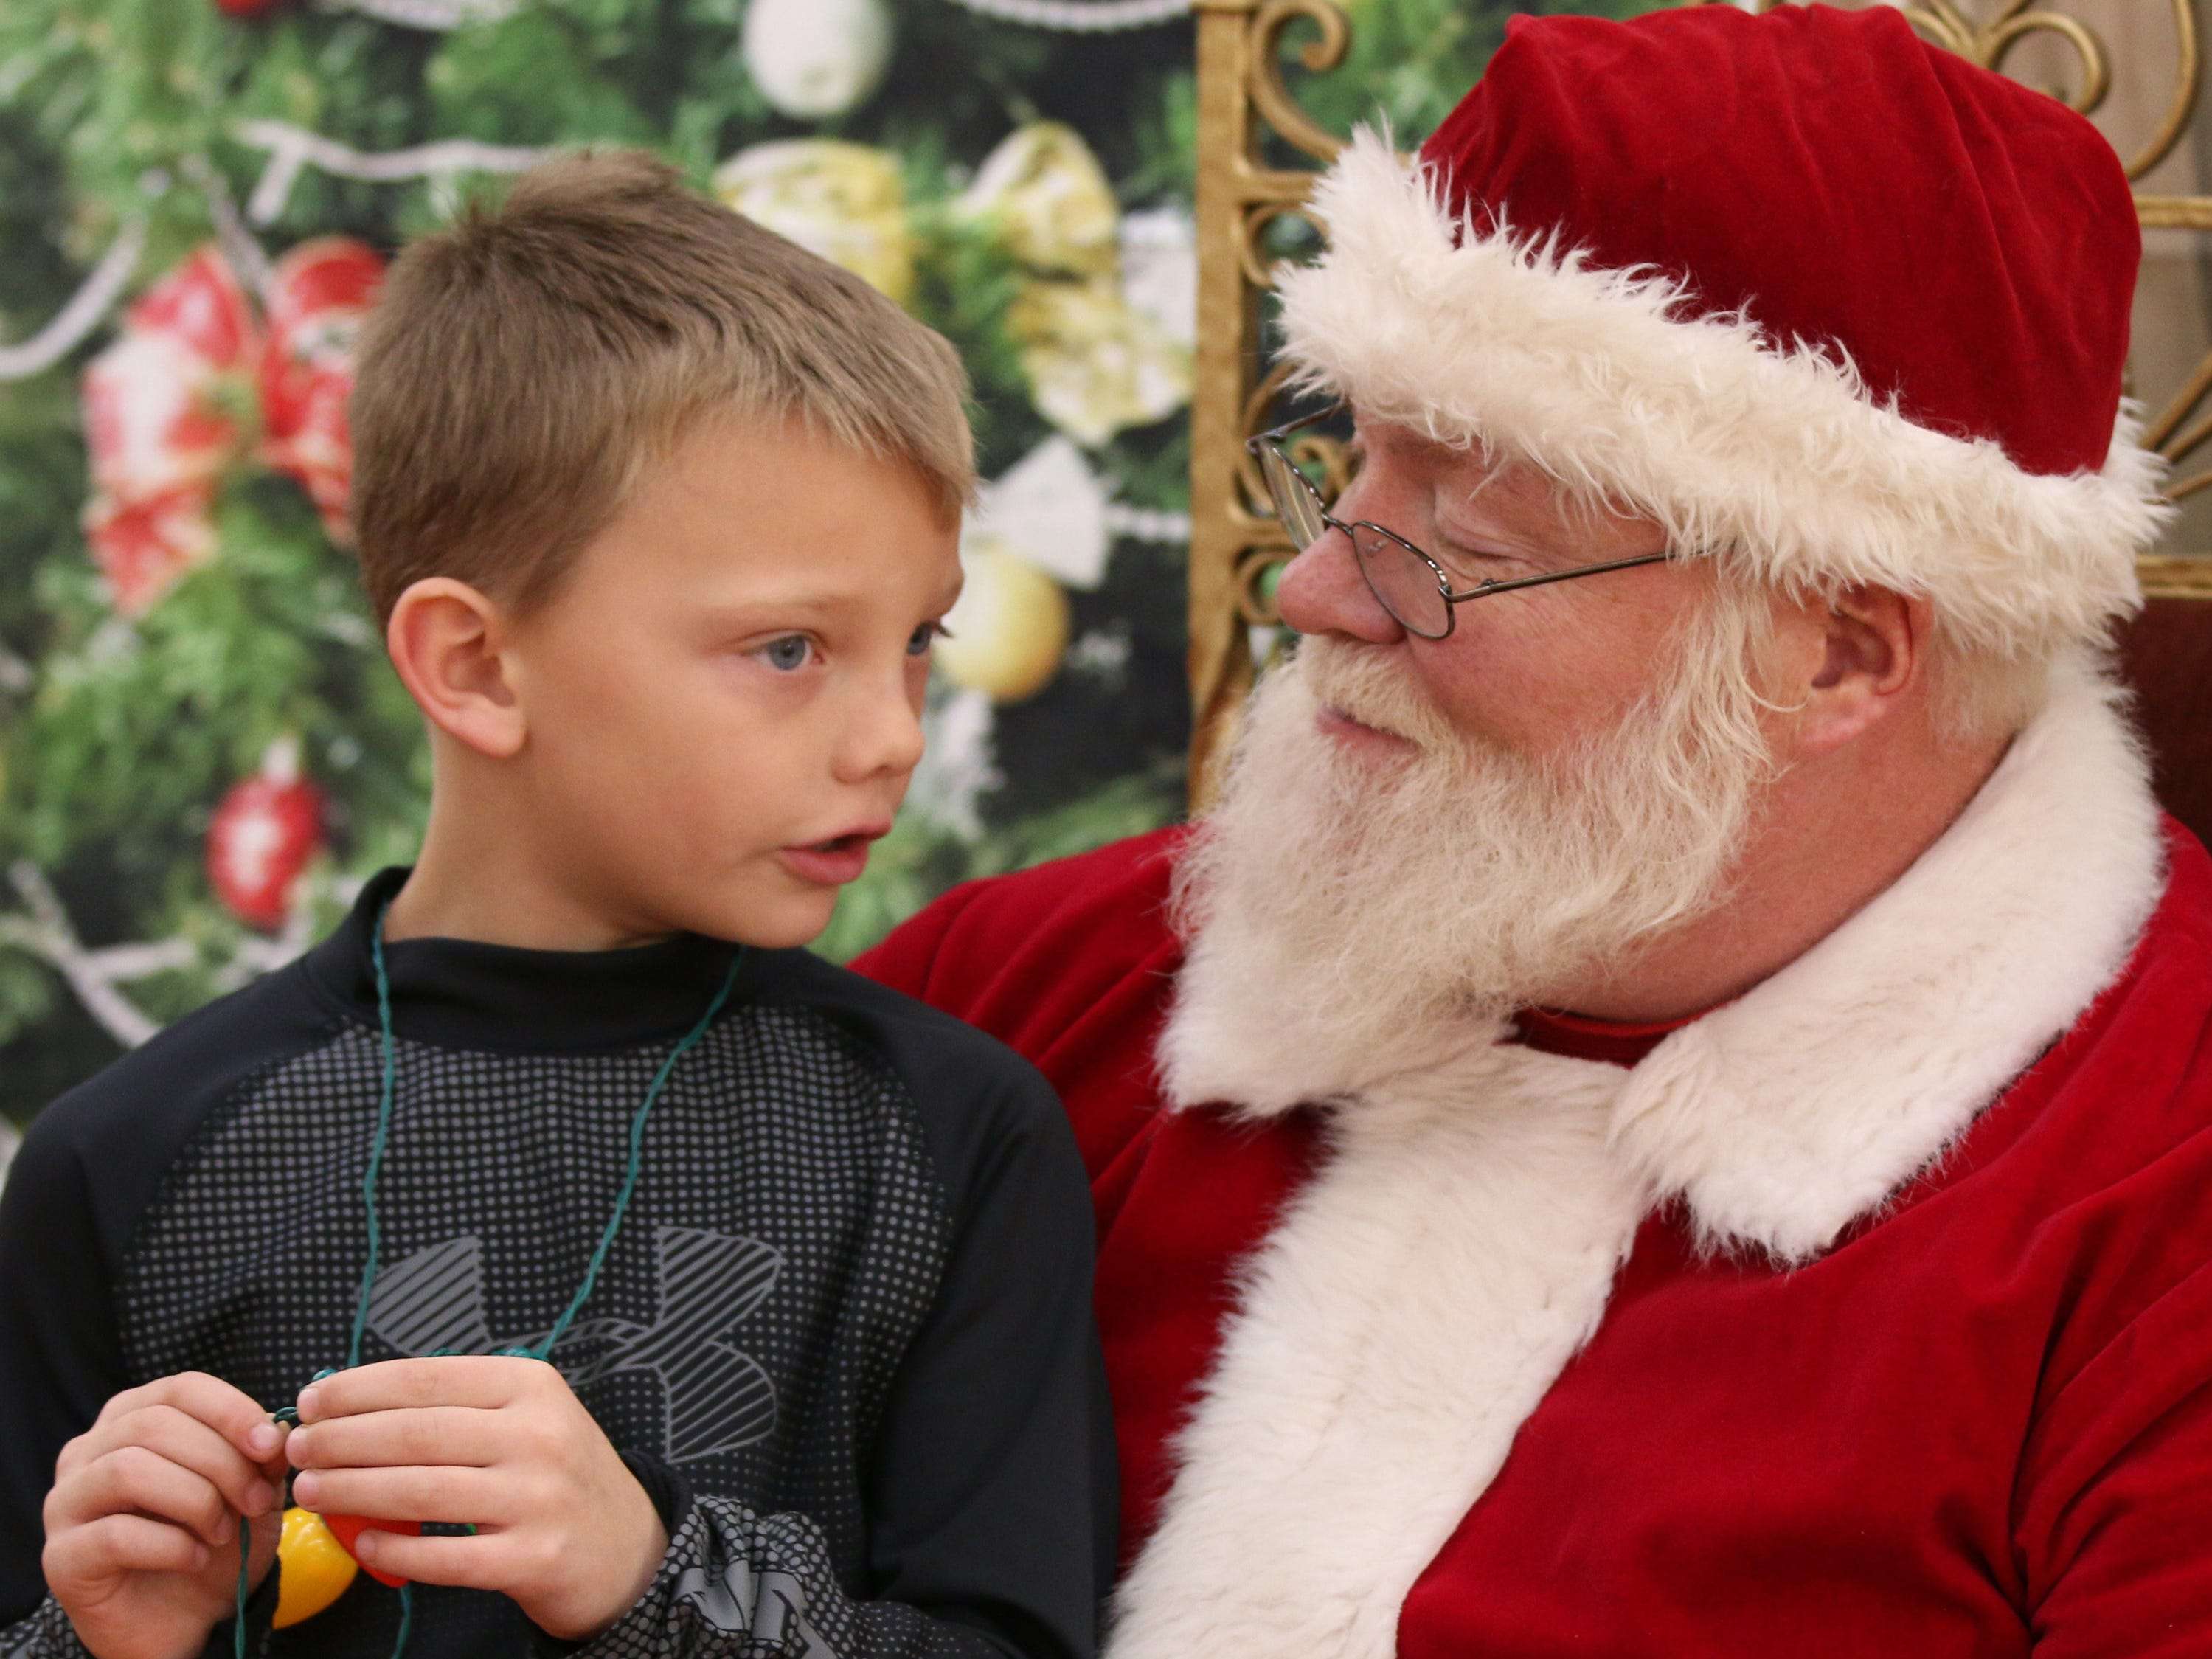 Carter Rekowski, 6, of Hingham, Wis., tells Santa Claus about his Christmas wishes at Festival Foods, Saturday November 17, 2018, in Sheboygan, Wis. Santa was part of the Salvation Army's Red Kettle Campaign kickoff.